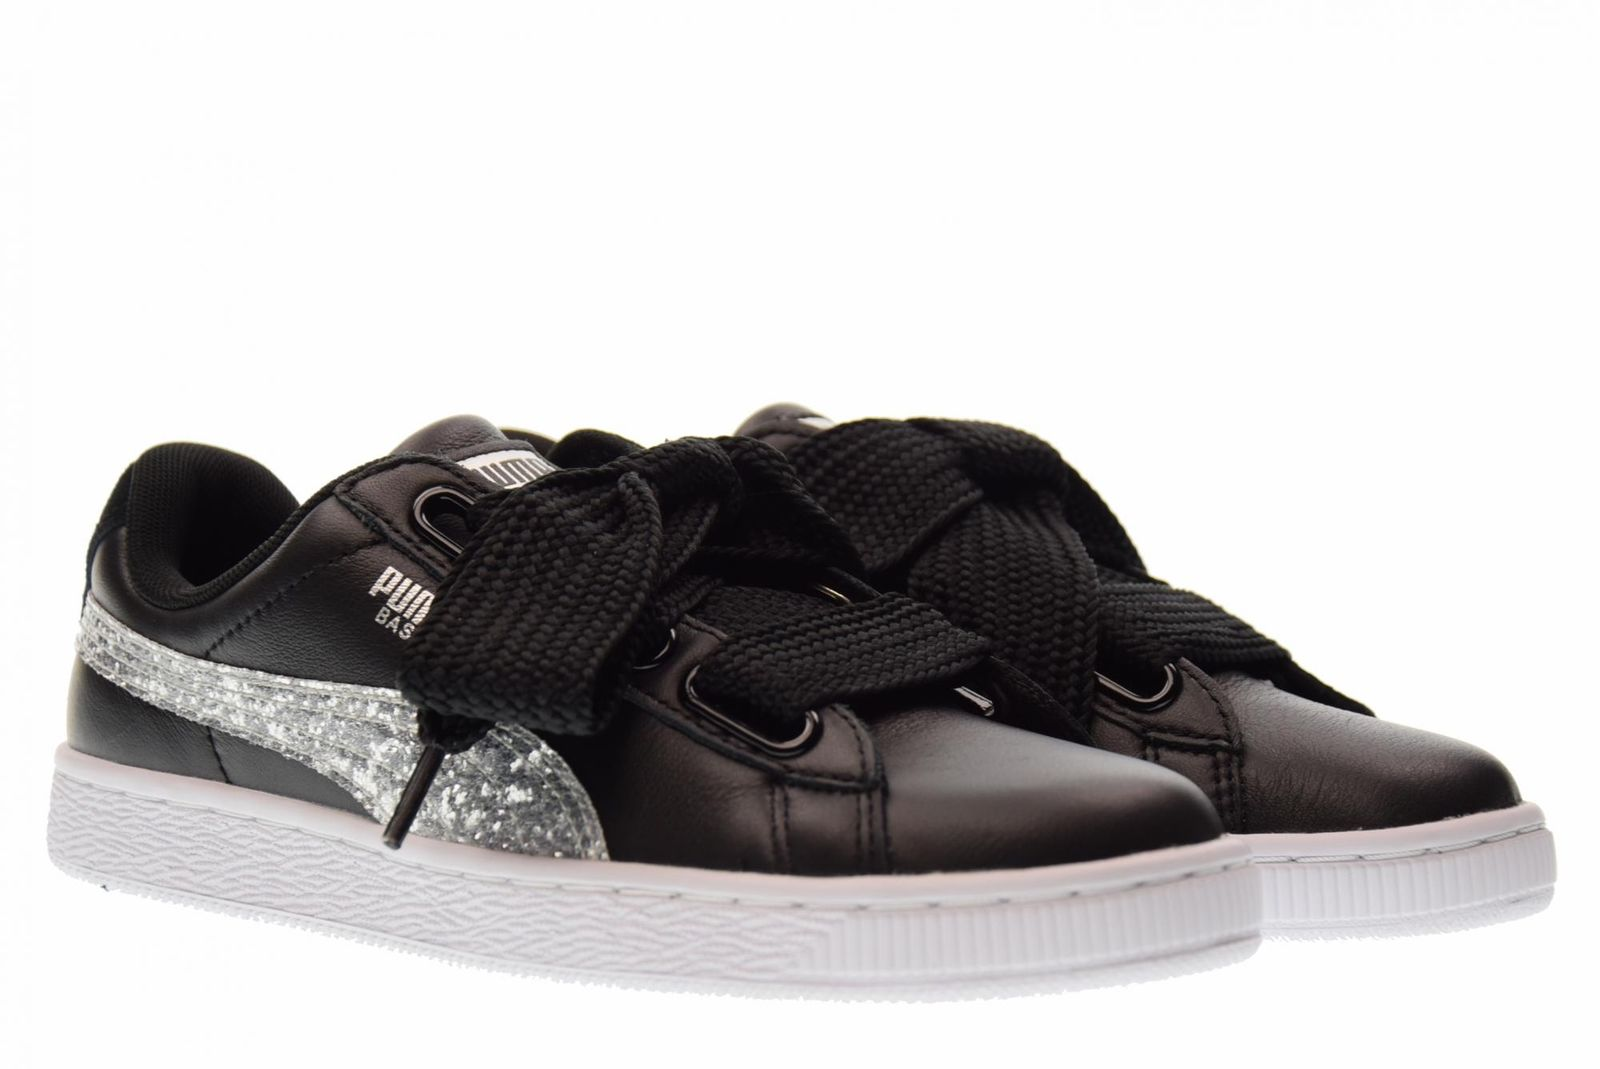 the latest 153a7 2c862 Details about Puma 364078 03 Basket Heart Glitter Black Silver Women's  Athletic Sneaker